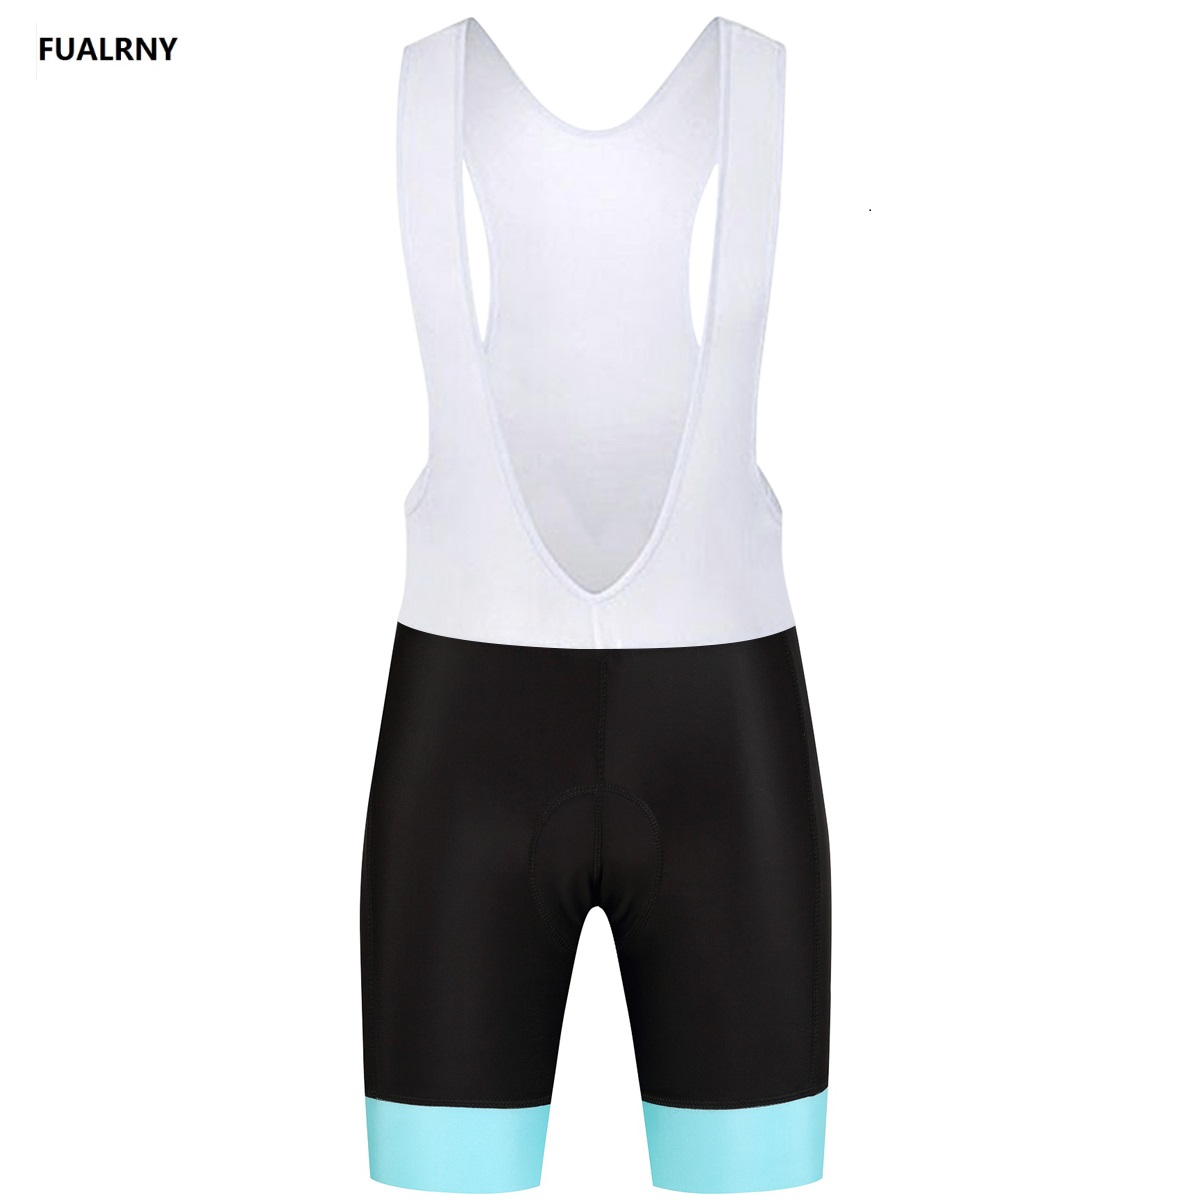 FUALRNY NEW Cycling bib shorts Quick-Dry Summer Women MTB Cycling Clothing Breathable Bicycle Clothes Ropa Ciclismo Ocean styleFUALRNY NEW Cycling bib shorts Quick-Dry Summer Women MTB Cycling Clothing Breathable Bicycle Clothes Ropa Ciclismo Ocean style